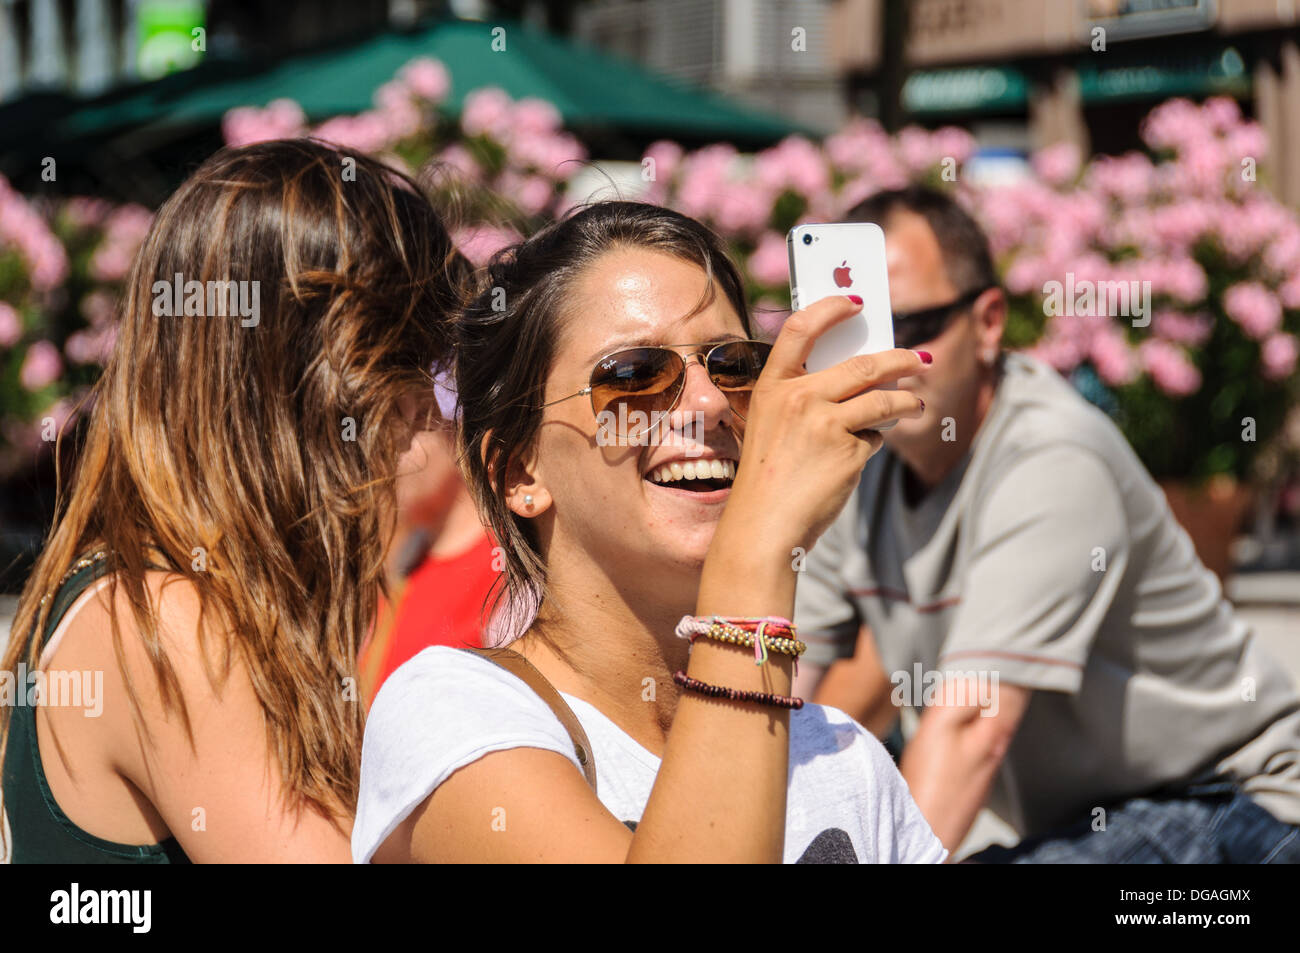 Young Caucasian woman, wearing sunglasses, smiling and taking pictures with an Apple iPhone Stock Photo